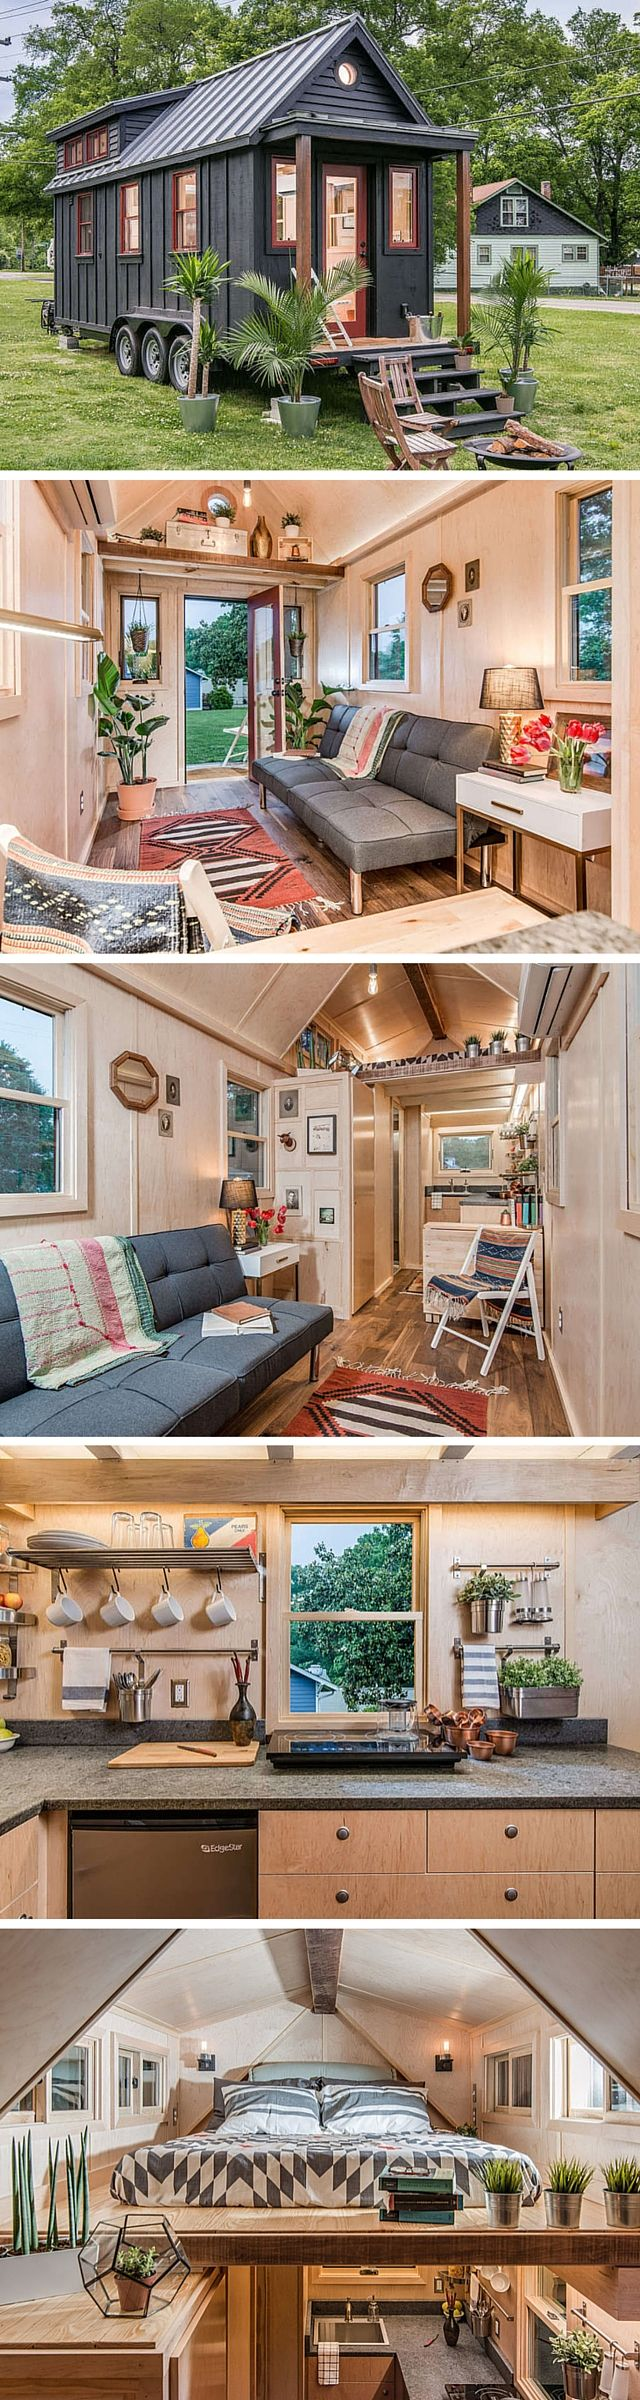 Best 25+ Tiny House Interiors Ideas On Pinterest | Small House Interiors, Tiny  House Trailer And Tiny Homes Interior Part 64